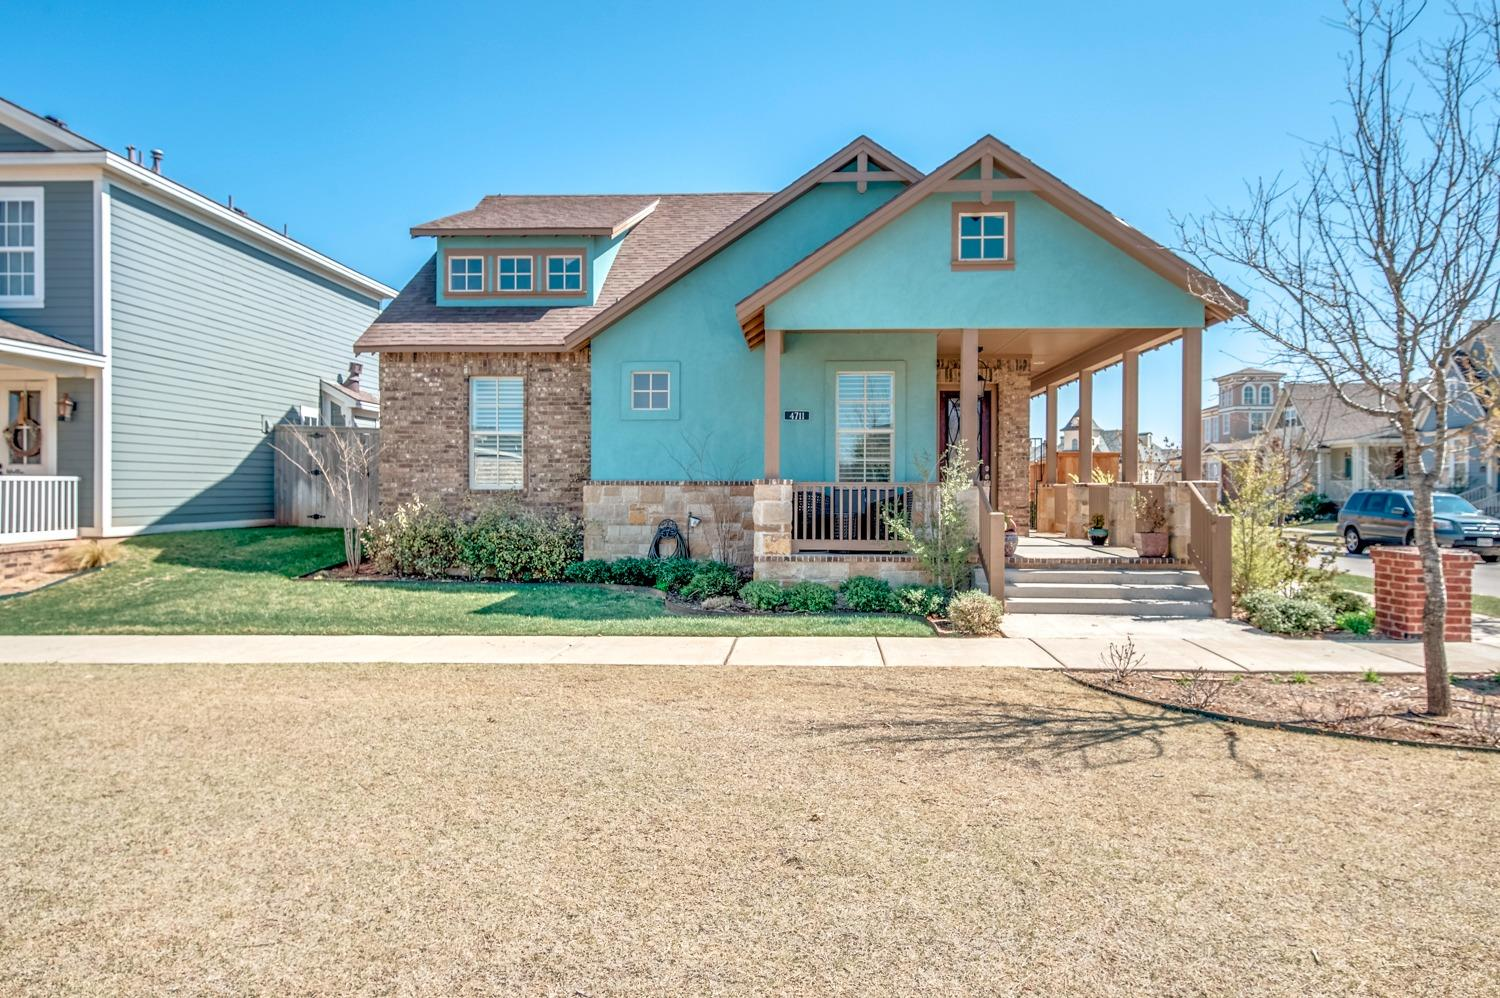 4711 120th Place, Lubbock in Lubbock County, TX 79424 Home for Sale